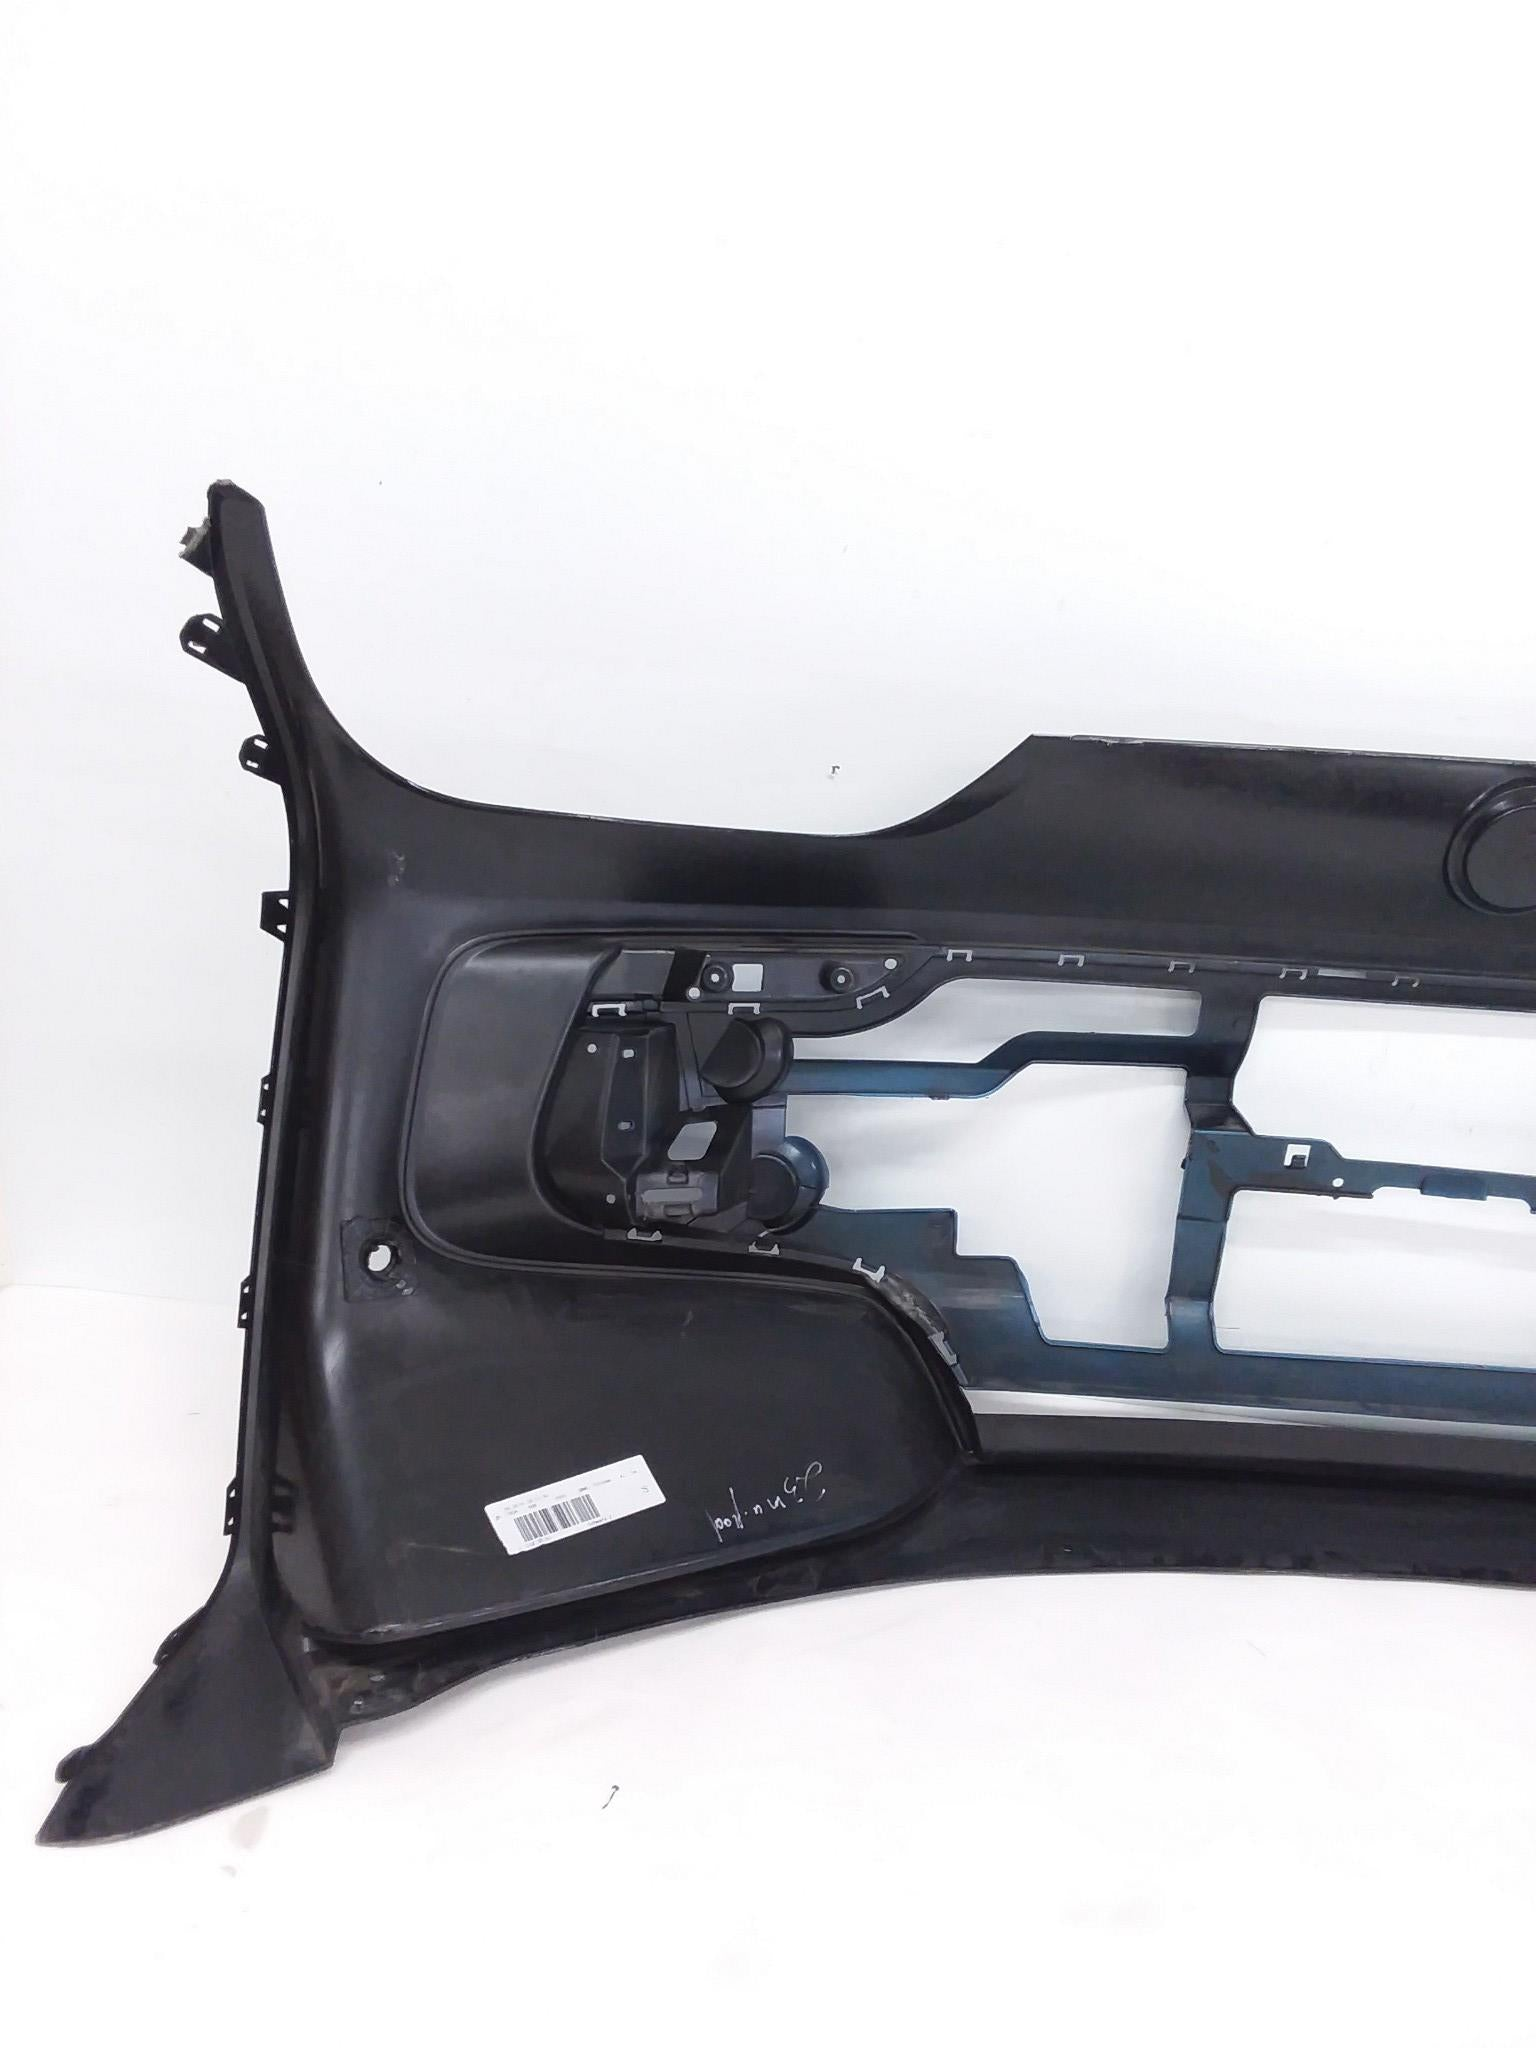 2014-2020 BMW I8 REAR OUTER BUMPER COVER BLACK / BLUE 51127394634 / 7336298 OEM